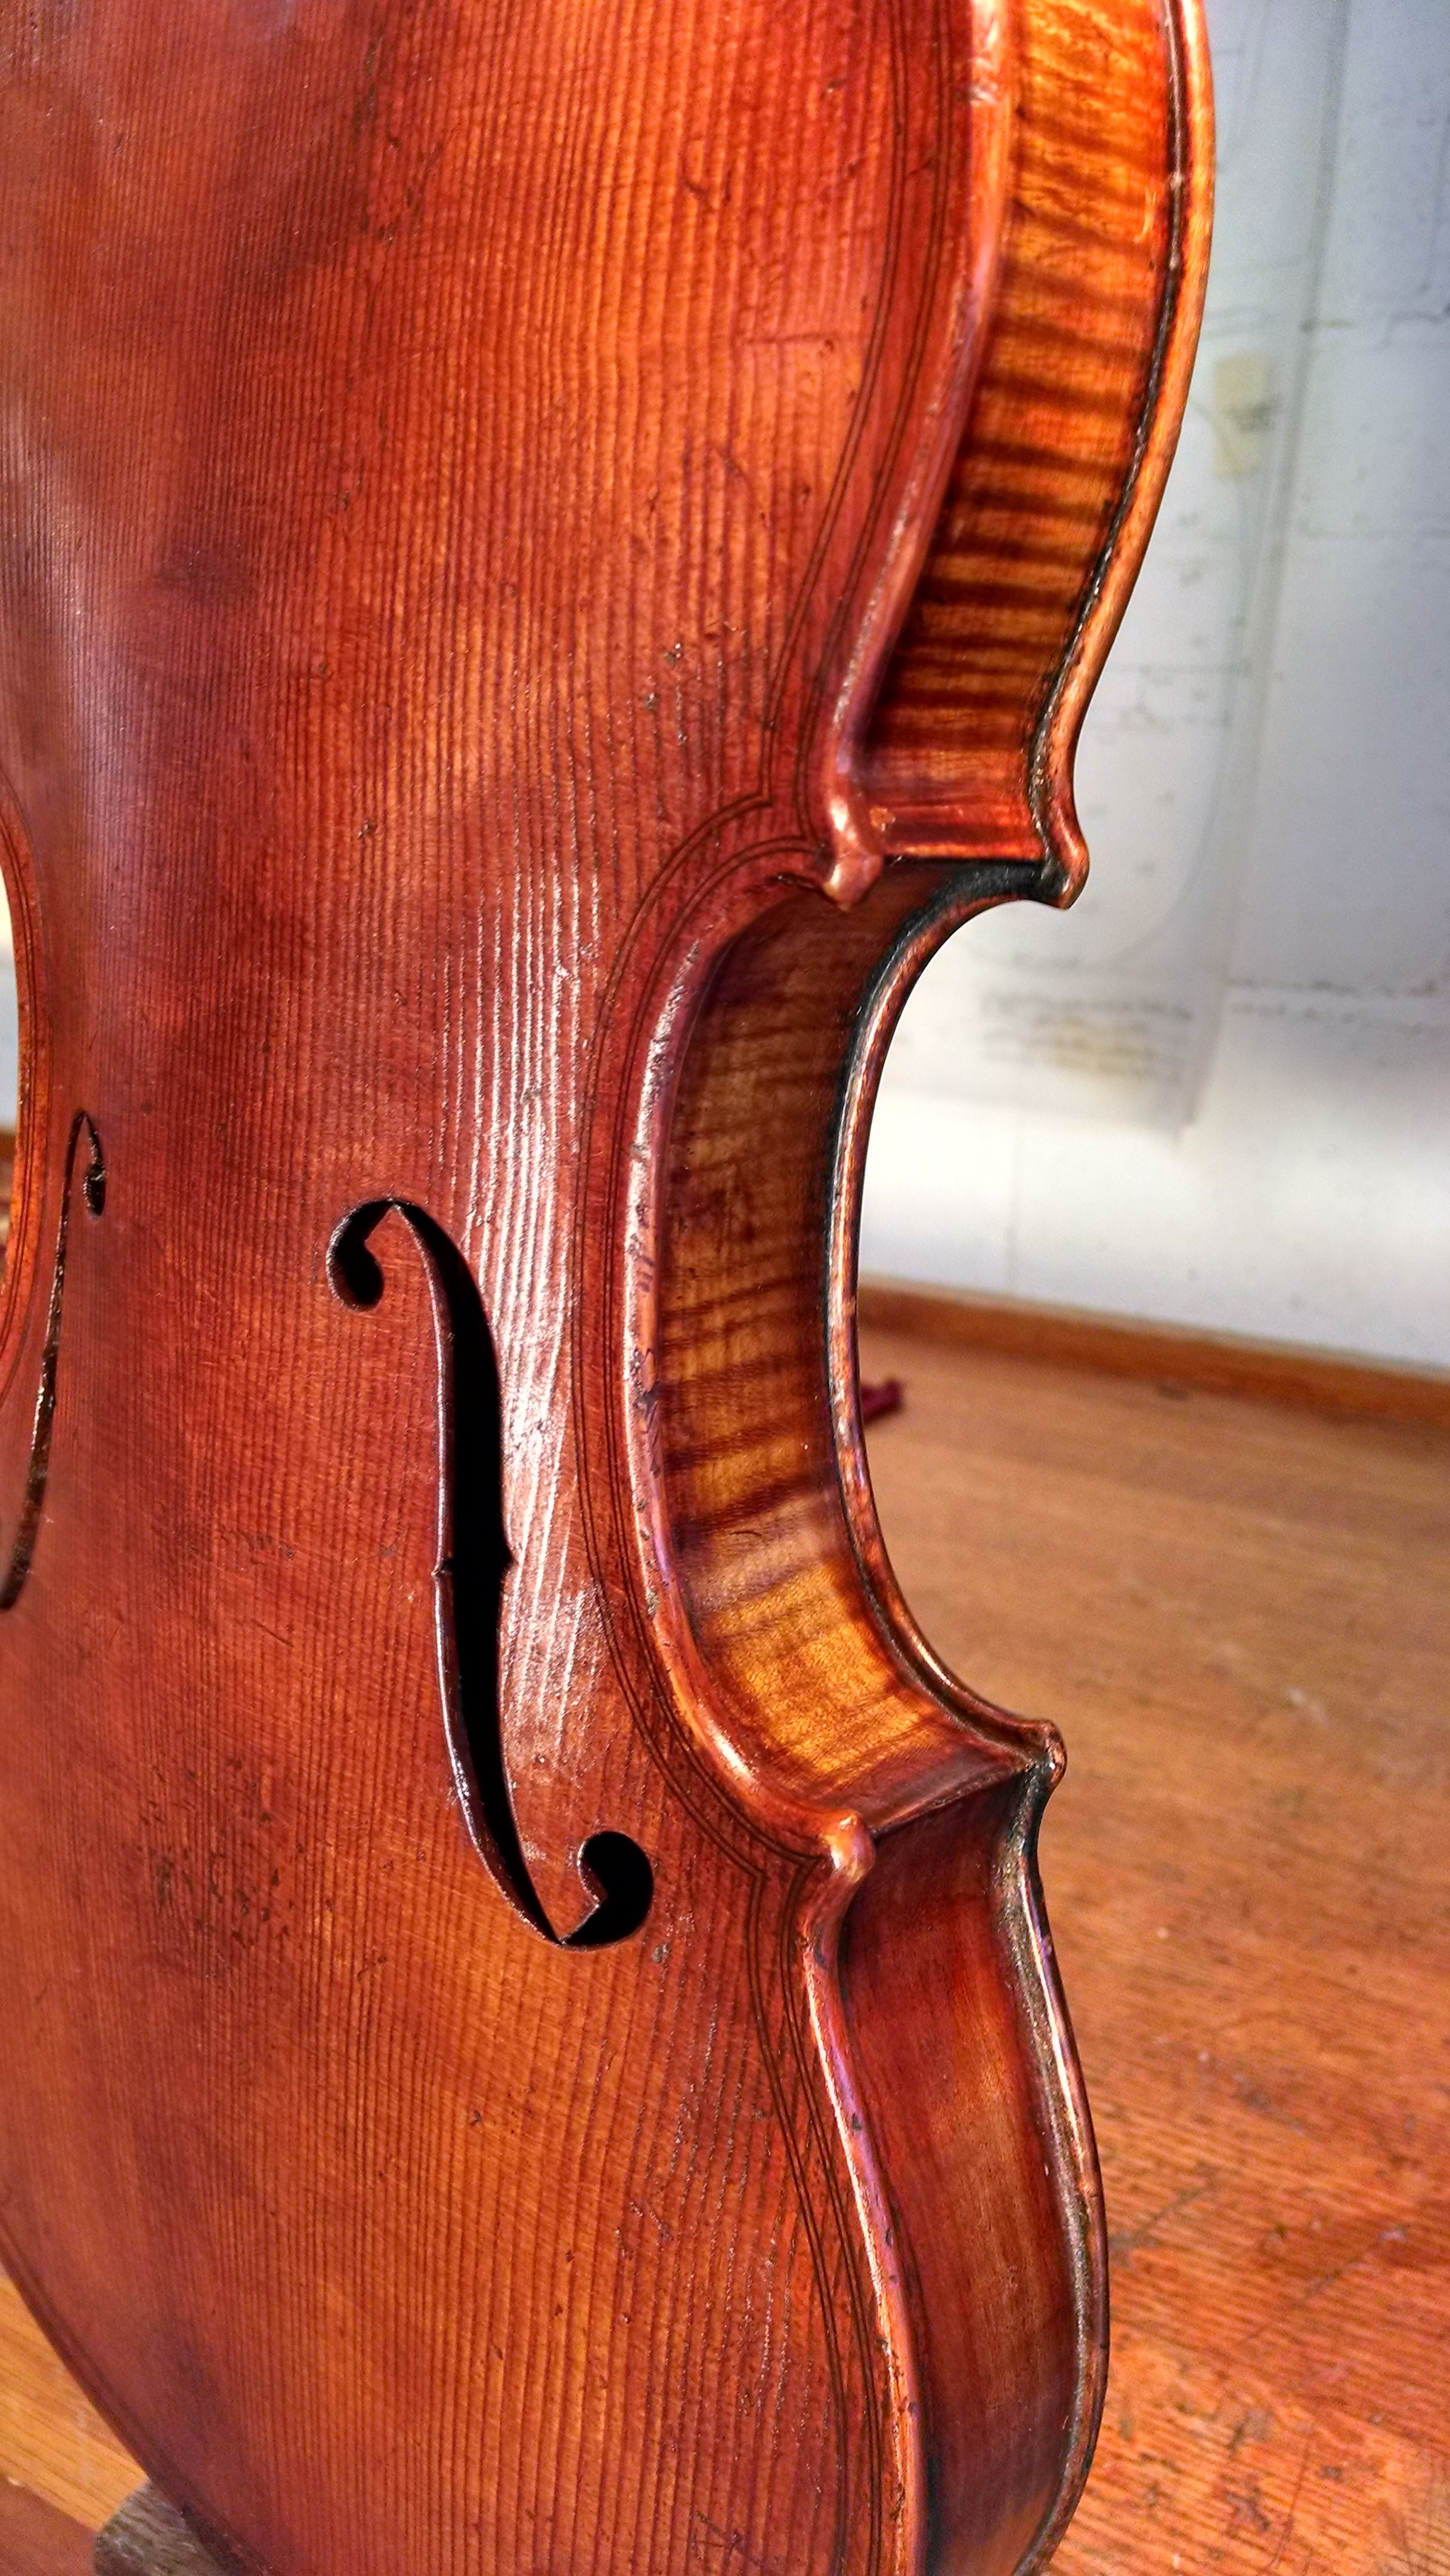 Old wood minerale interior of violin - The Maggini Violin After Matching The Varnish